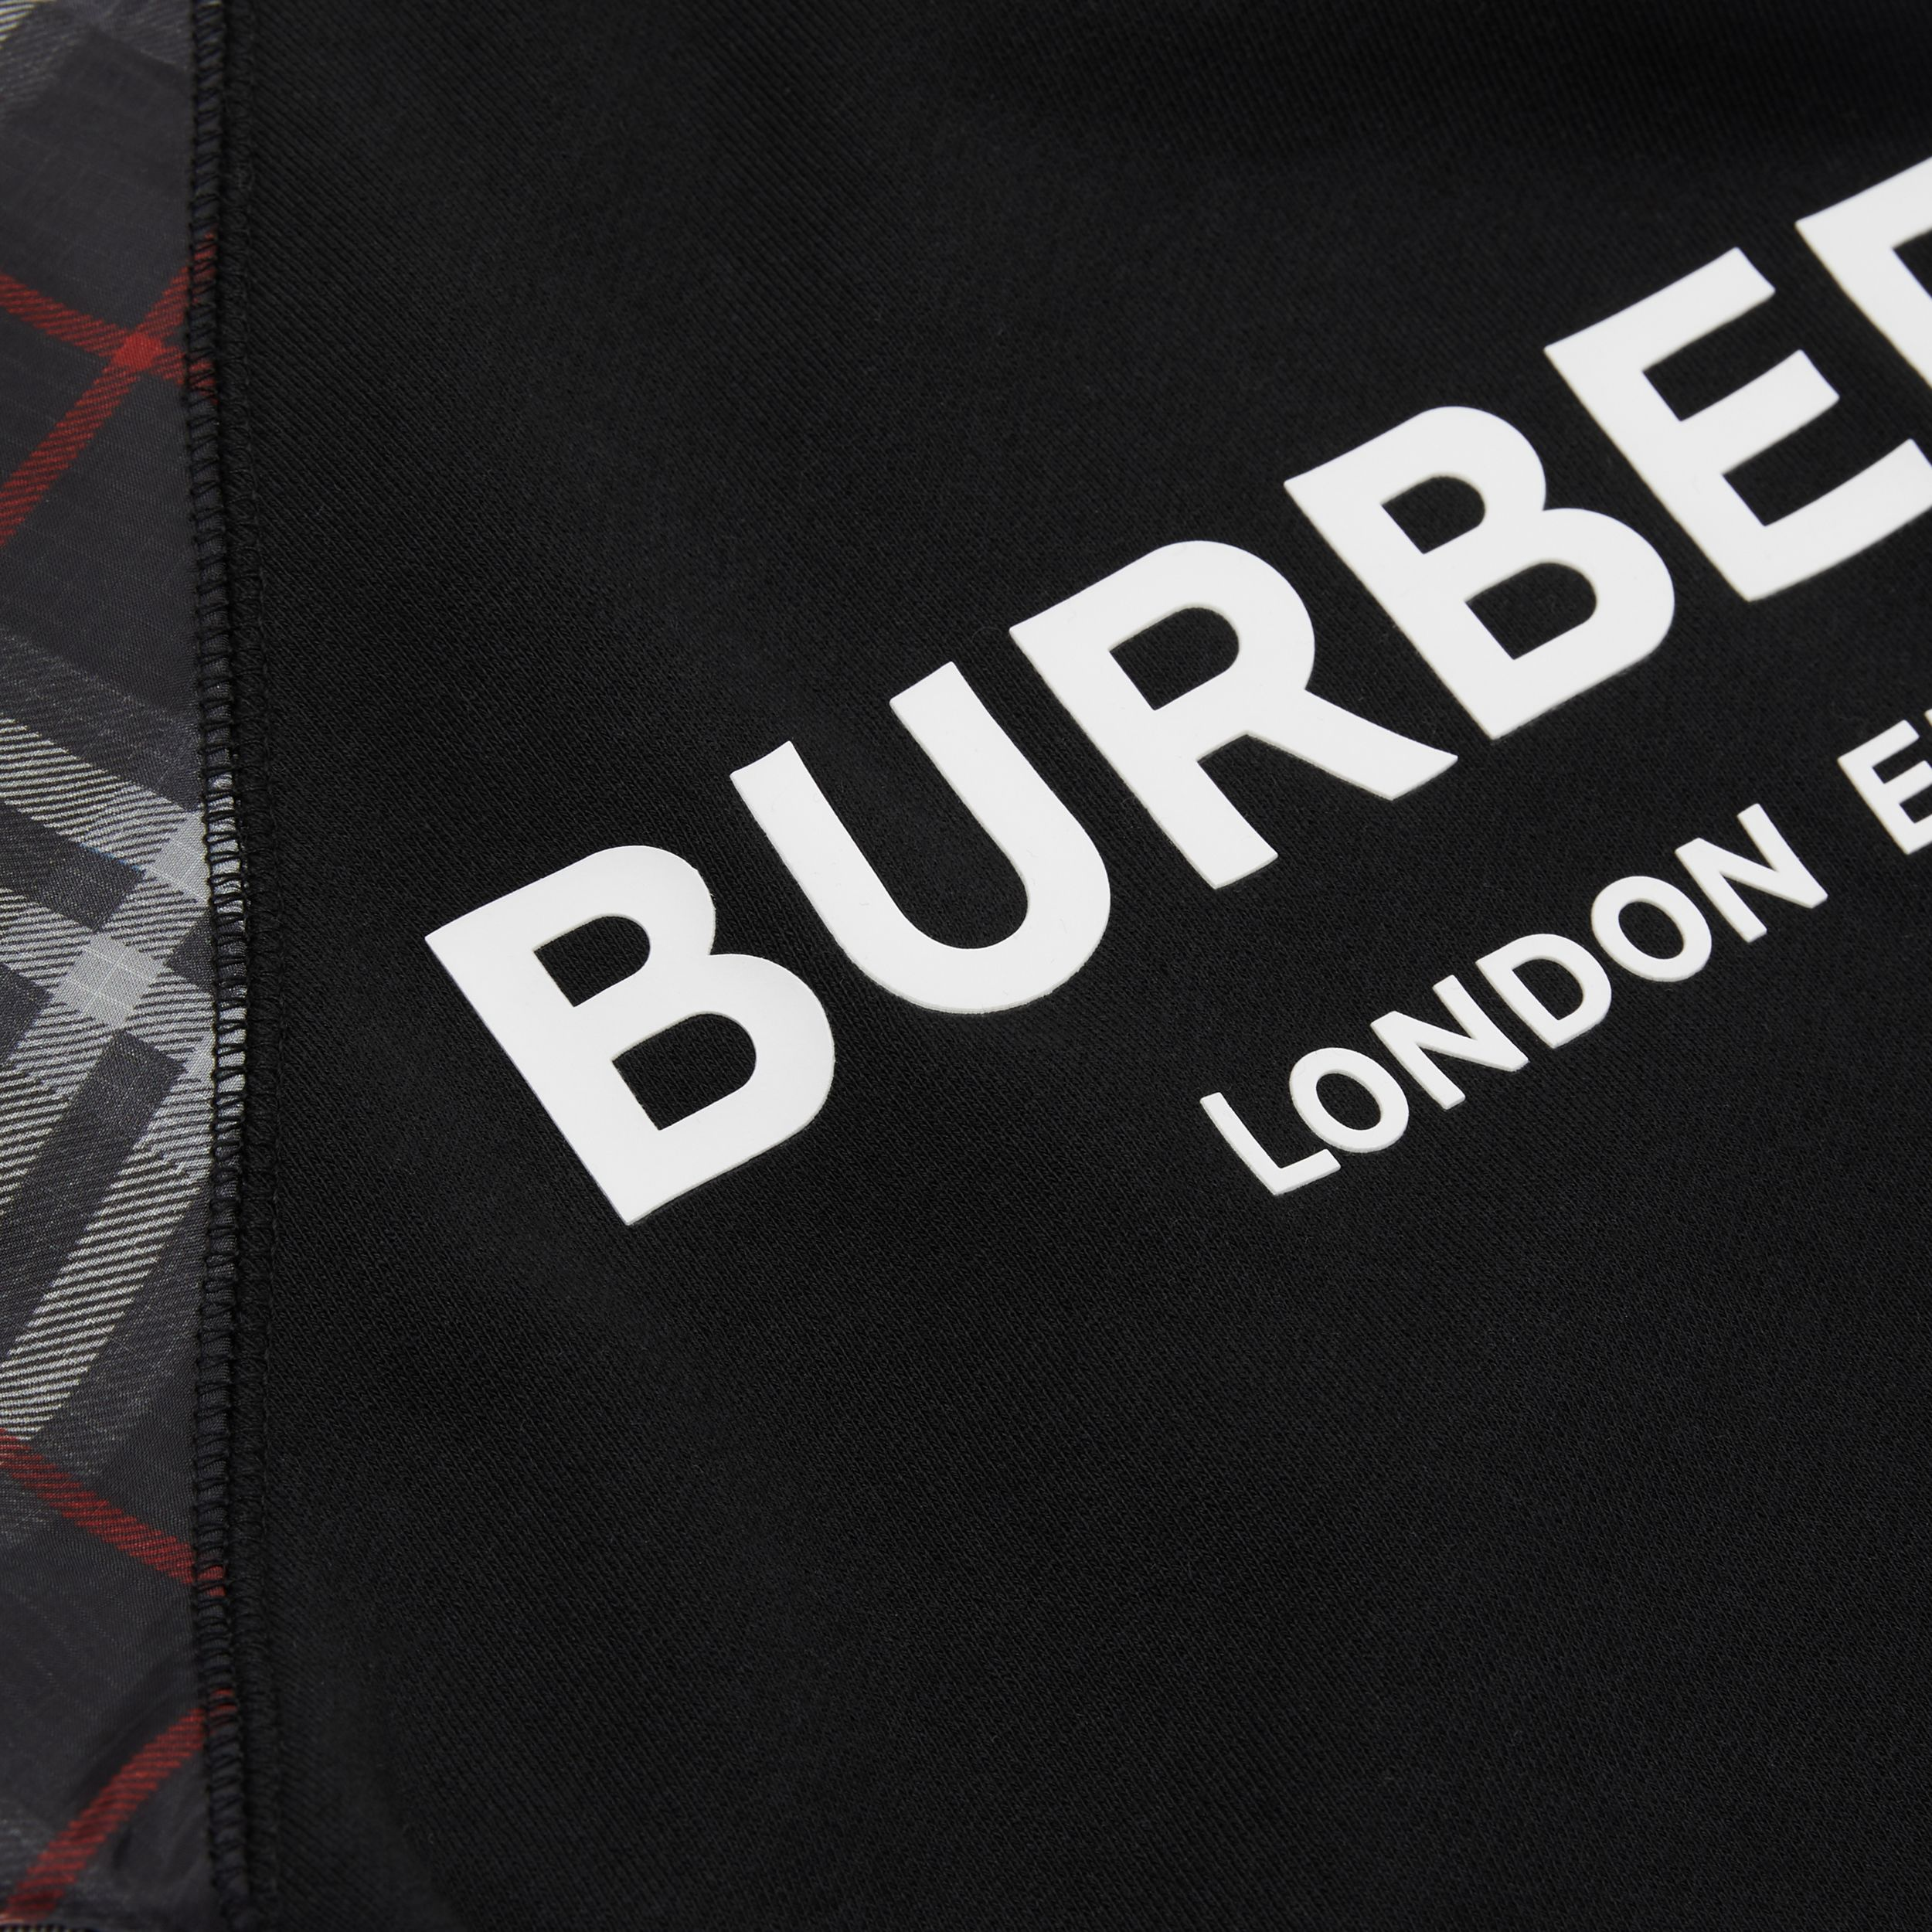 Vintage Check Detail Logo Print Cotton Sweatshirt in Black | Burberry - 2